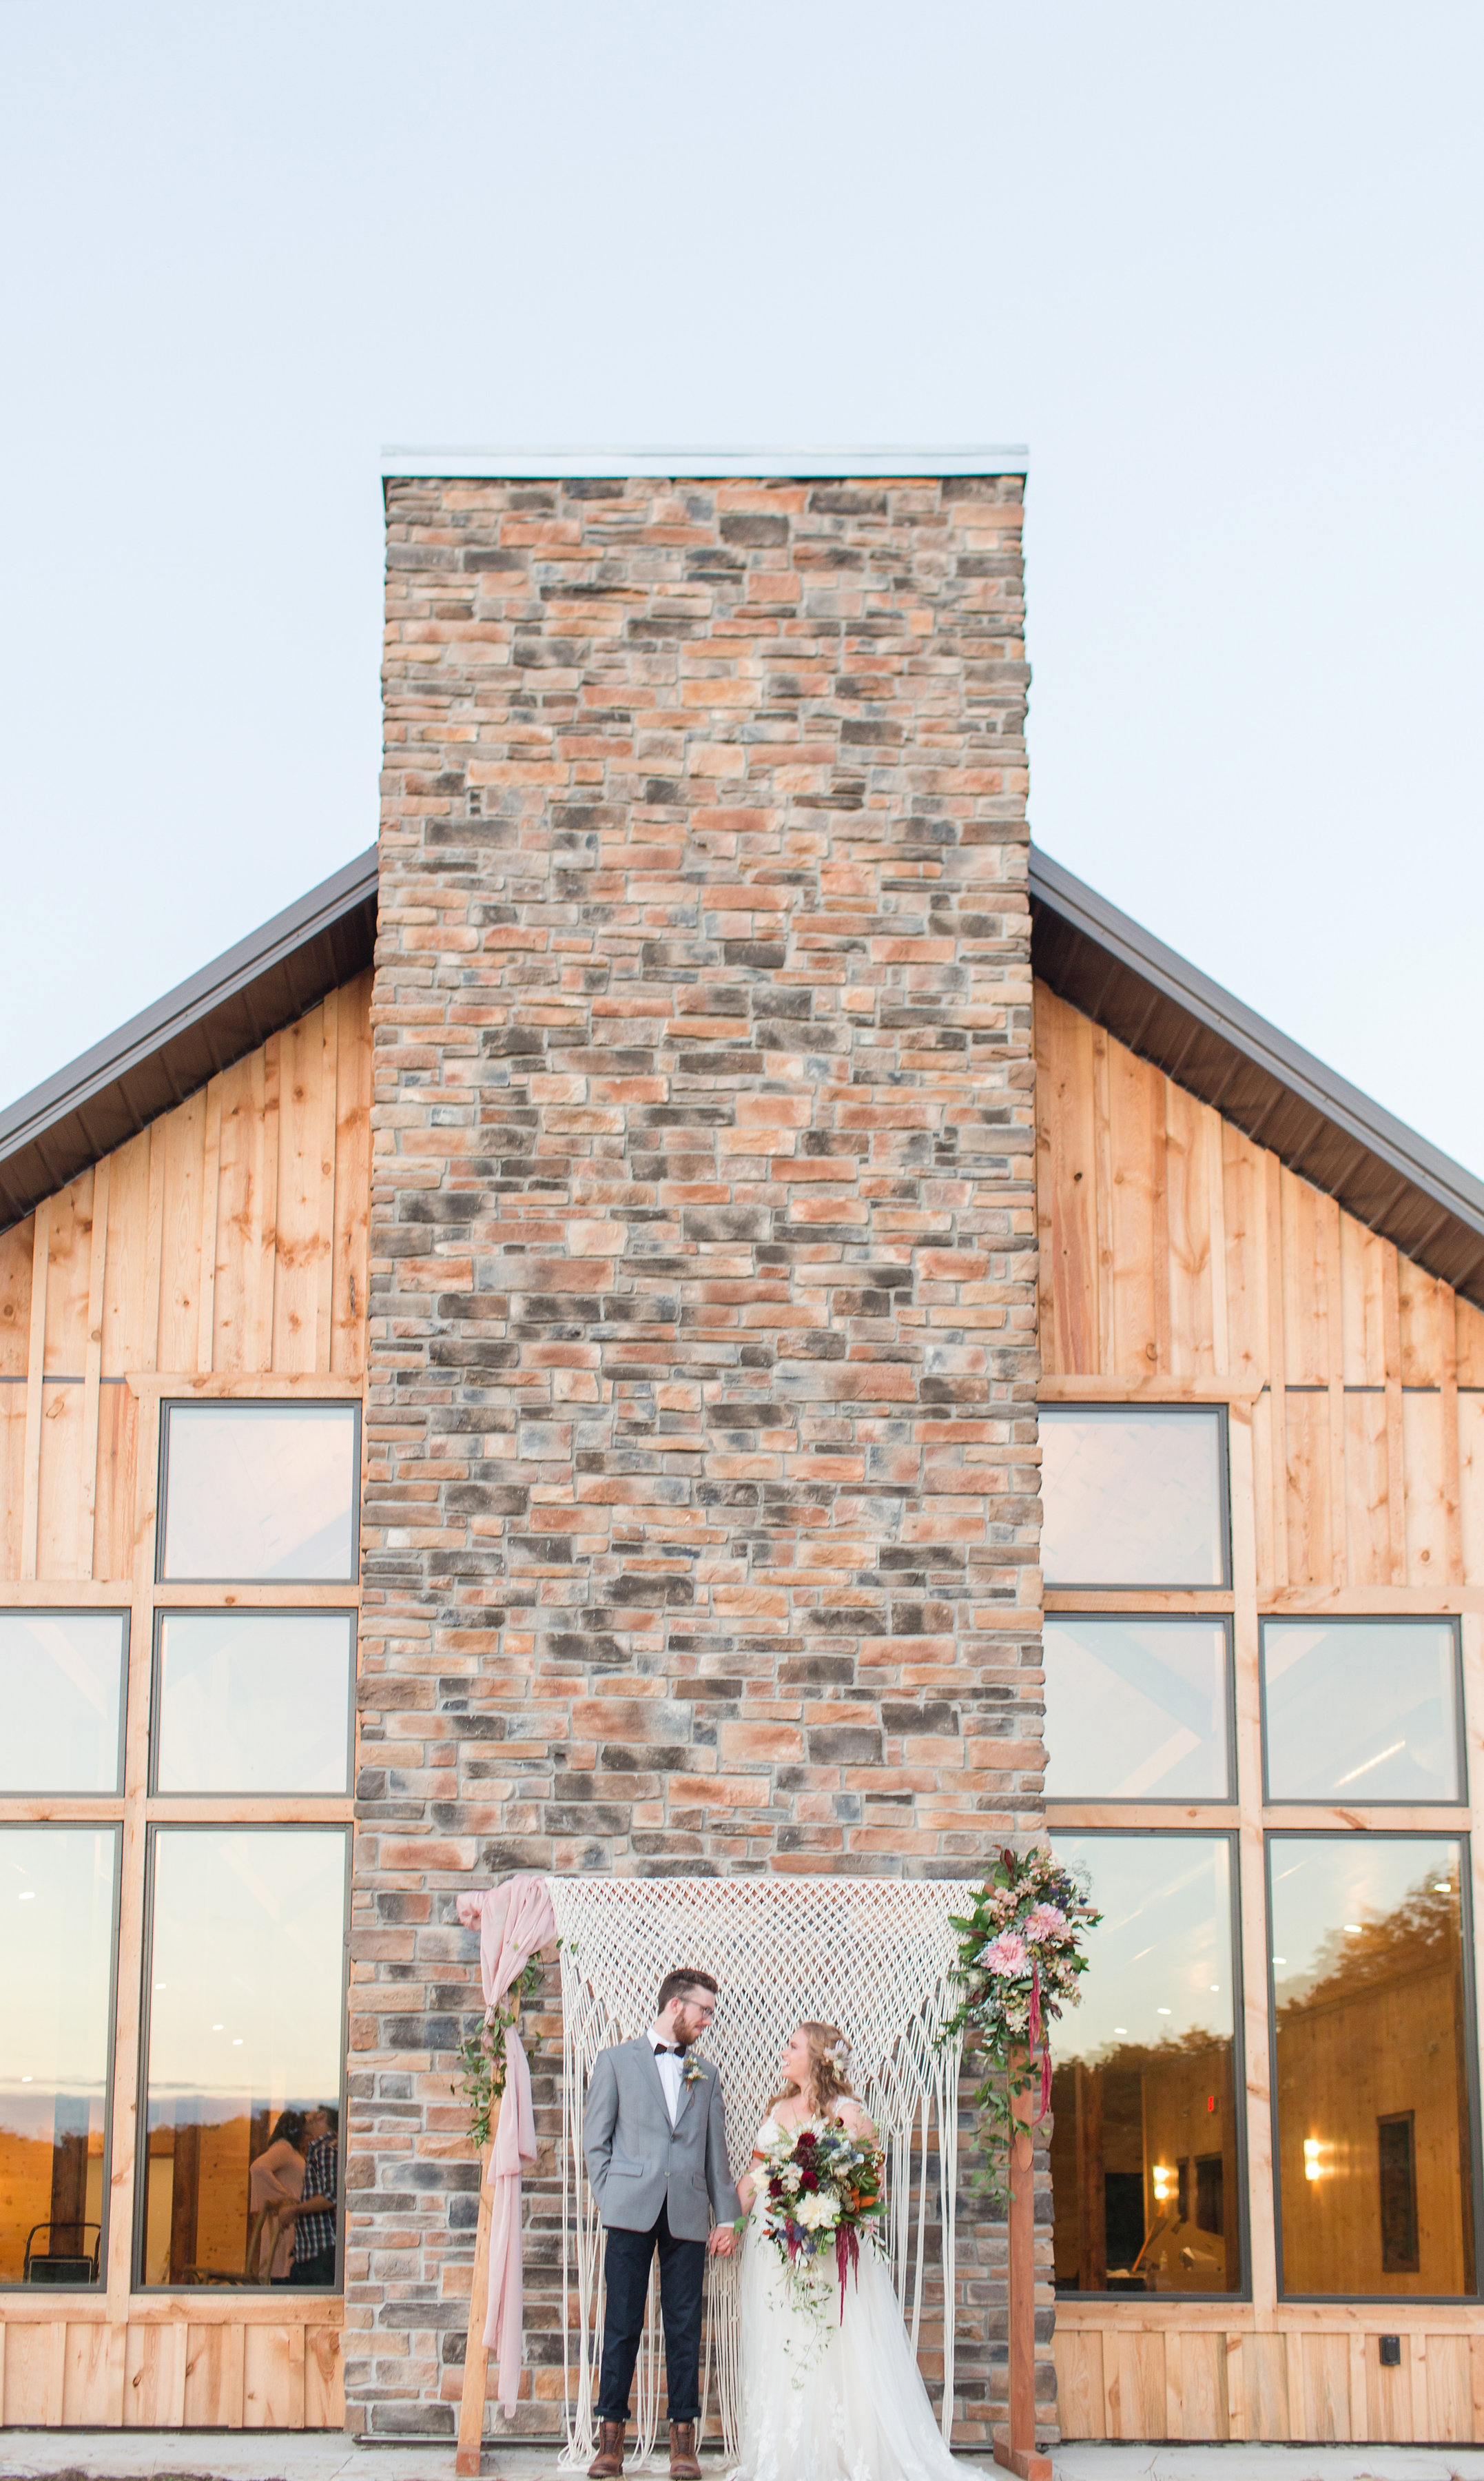 country-lane-lodge-adel-iowa-wedding-venue-white-lace-dress-purple-red-lush-bouquet-planned-by-mostly-becky-weddings-outdoor-ceremony-lodge-wedding